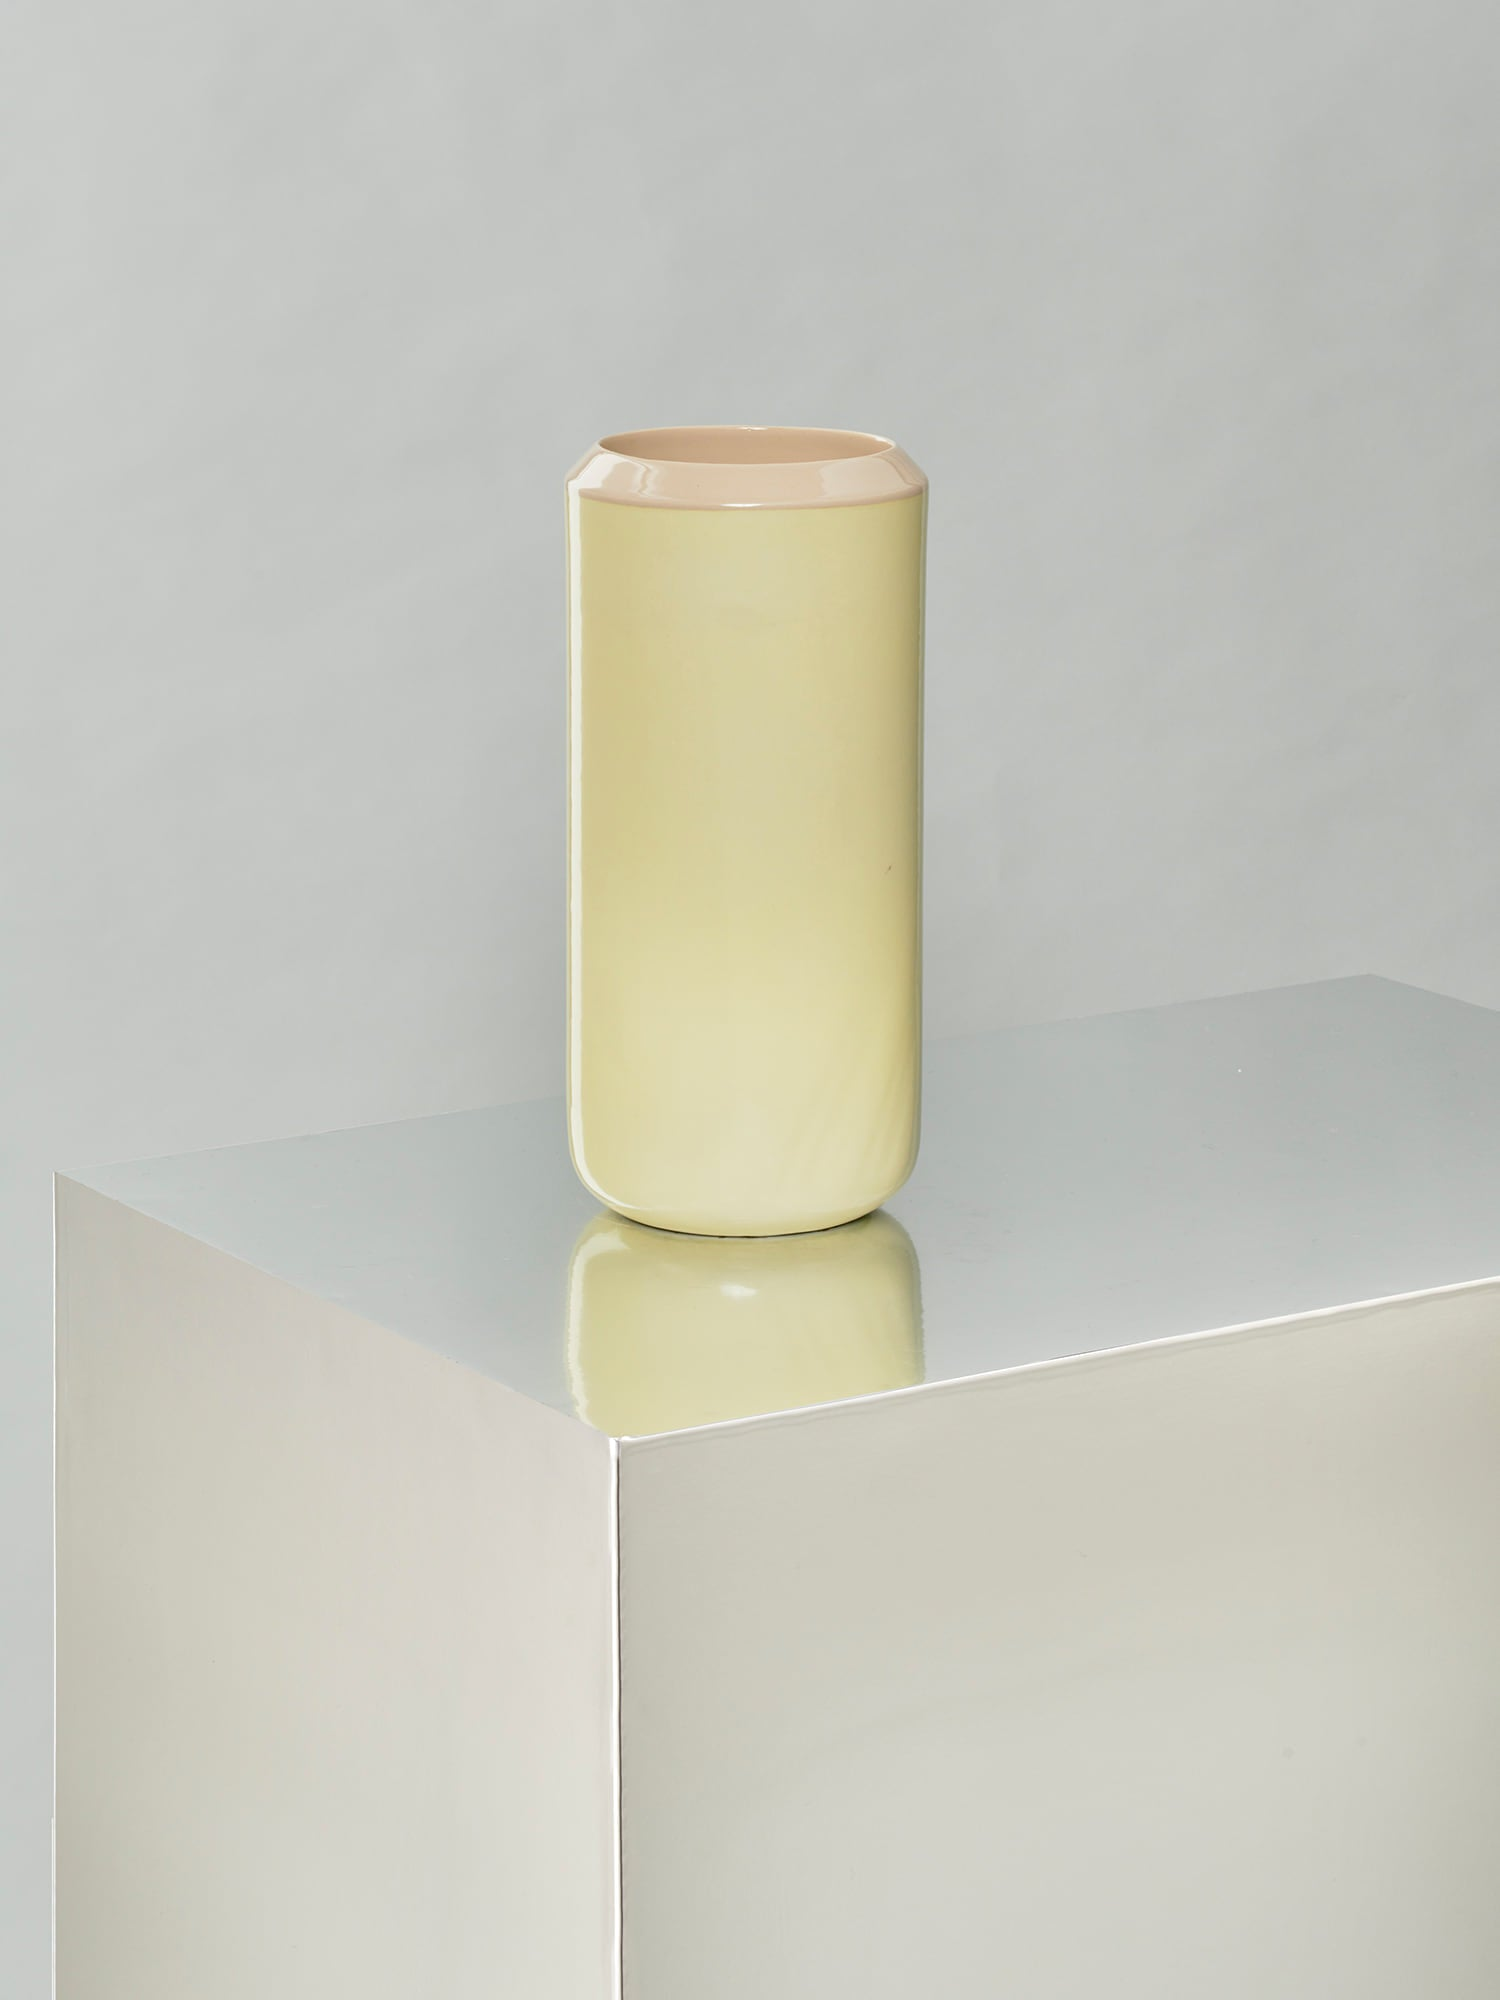 Into Each Other - Vase 2 - Yellow and Beige